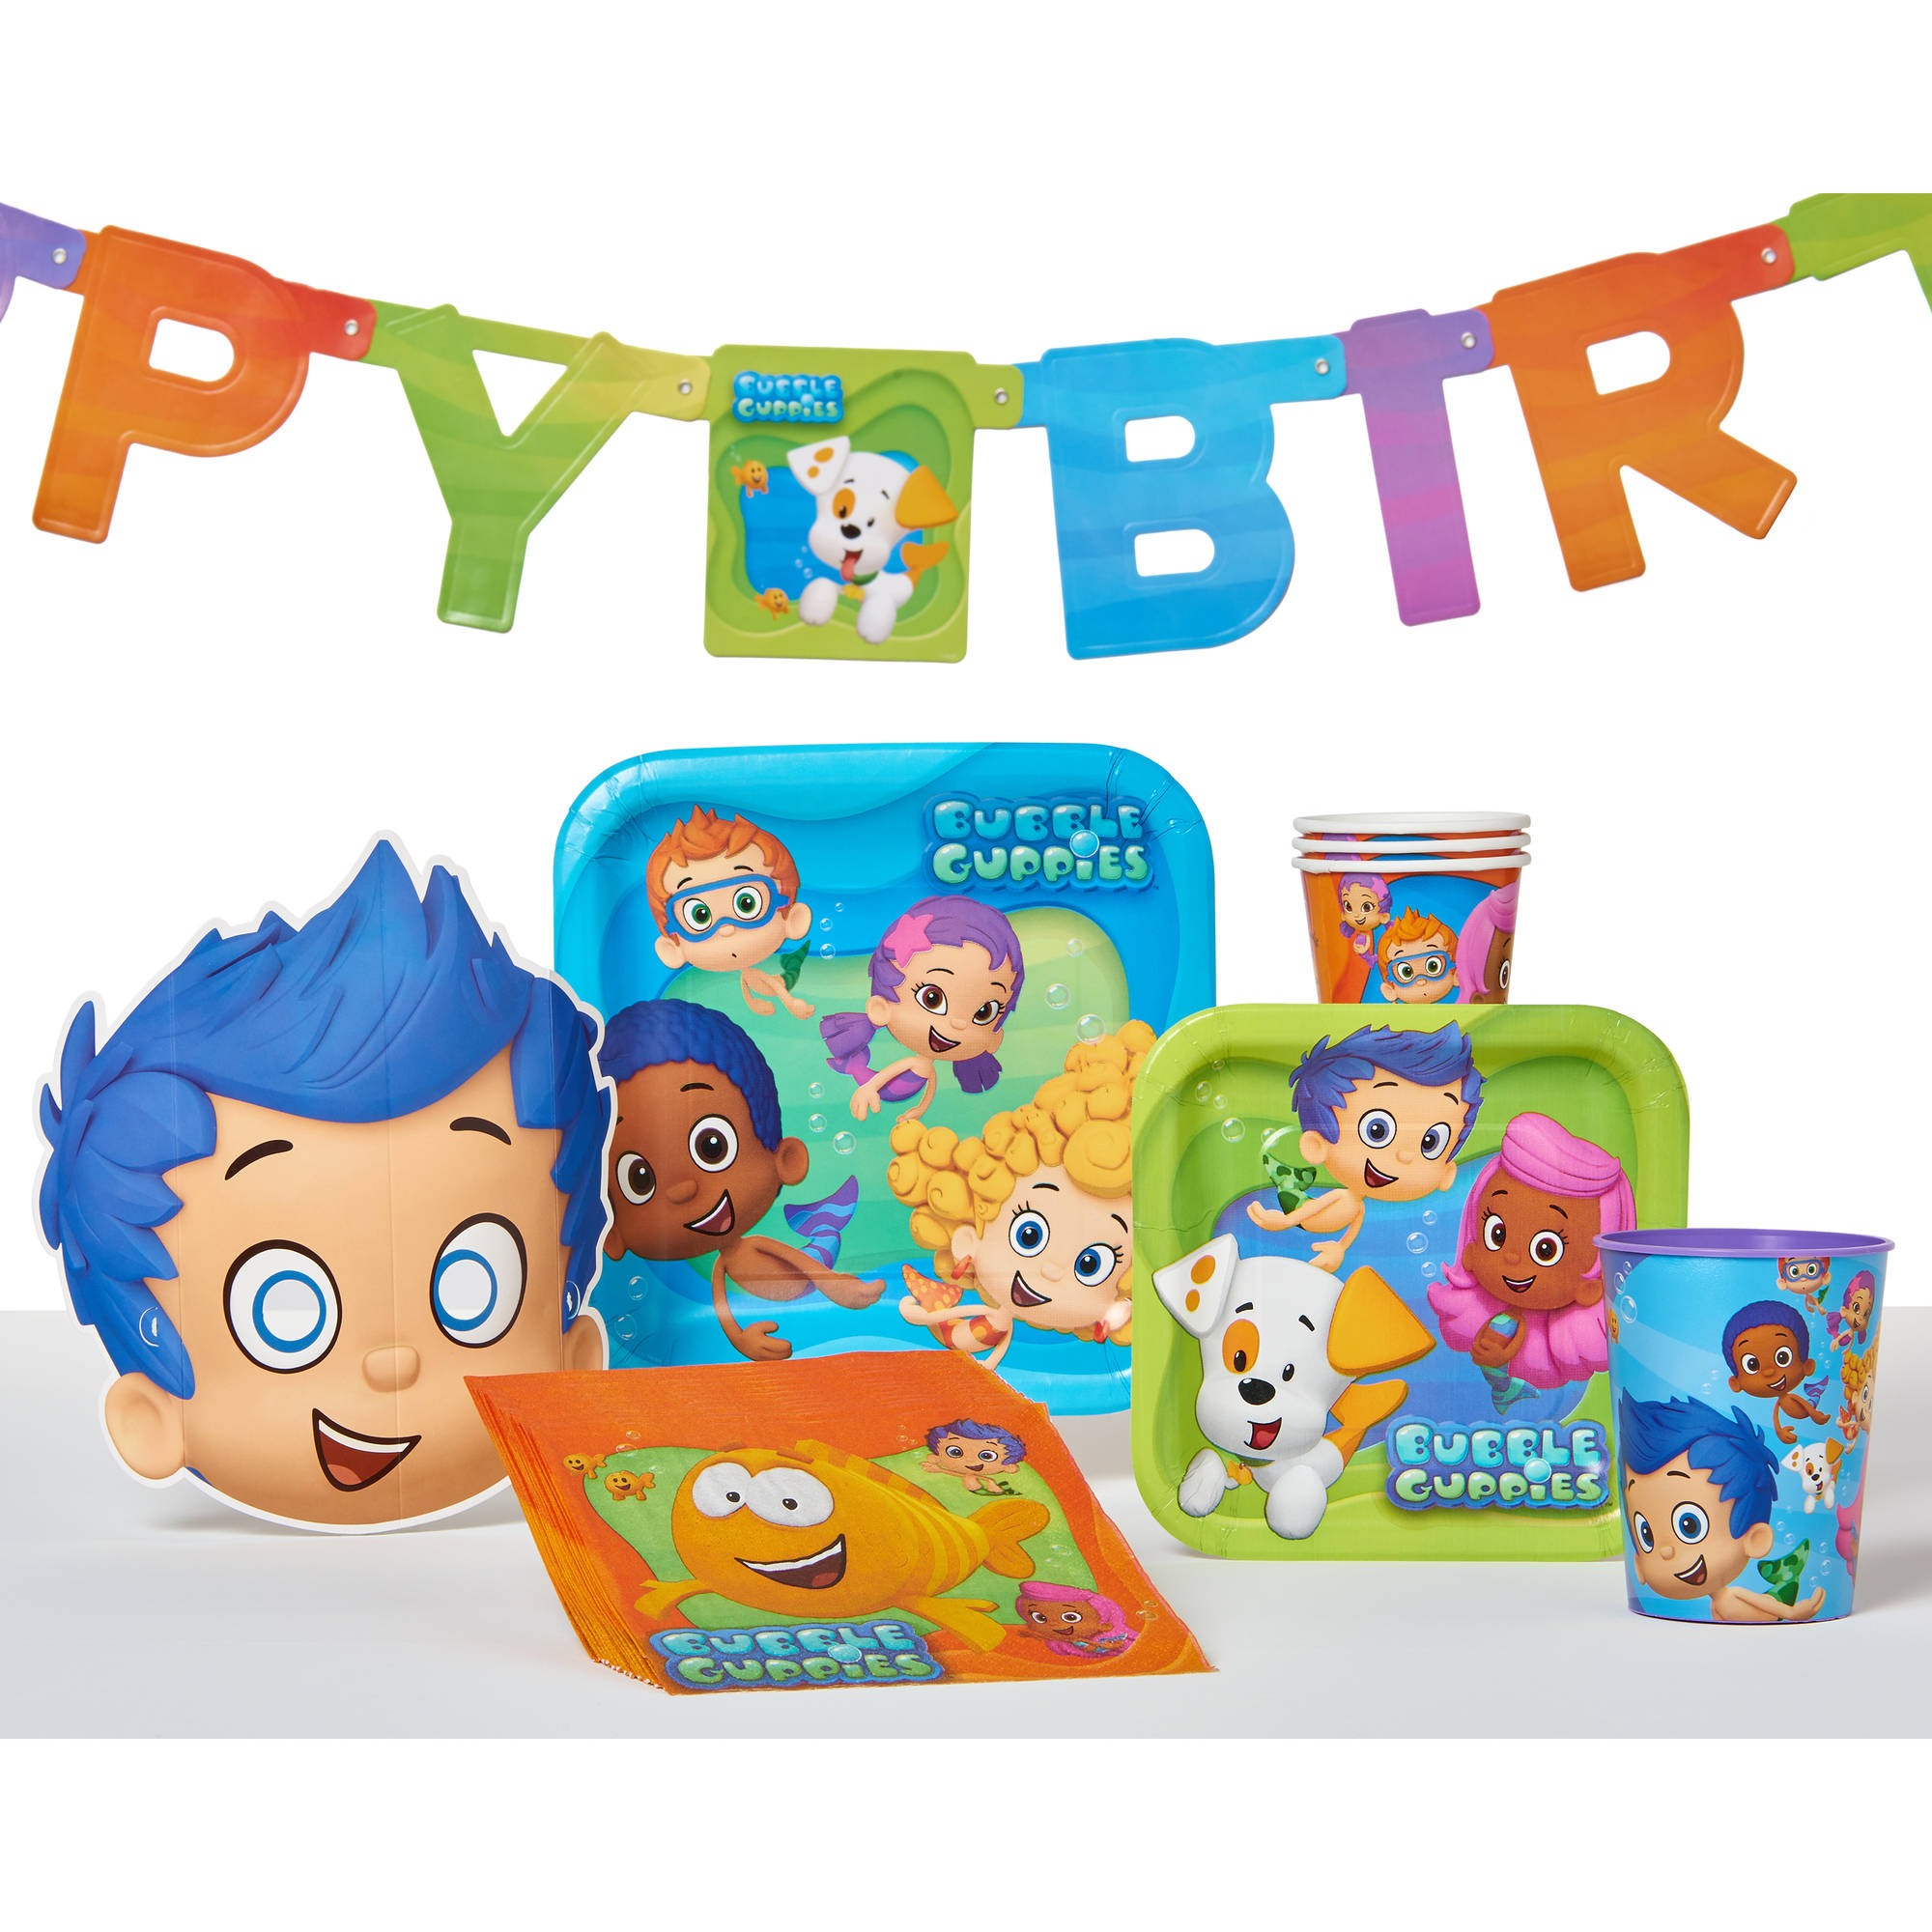 bubble guppies birthday party banner, party supplies - walmart